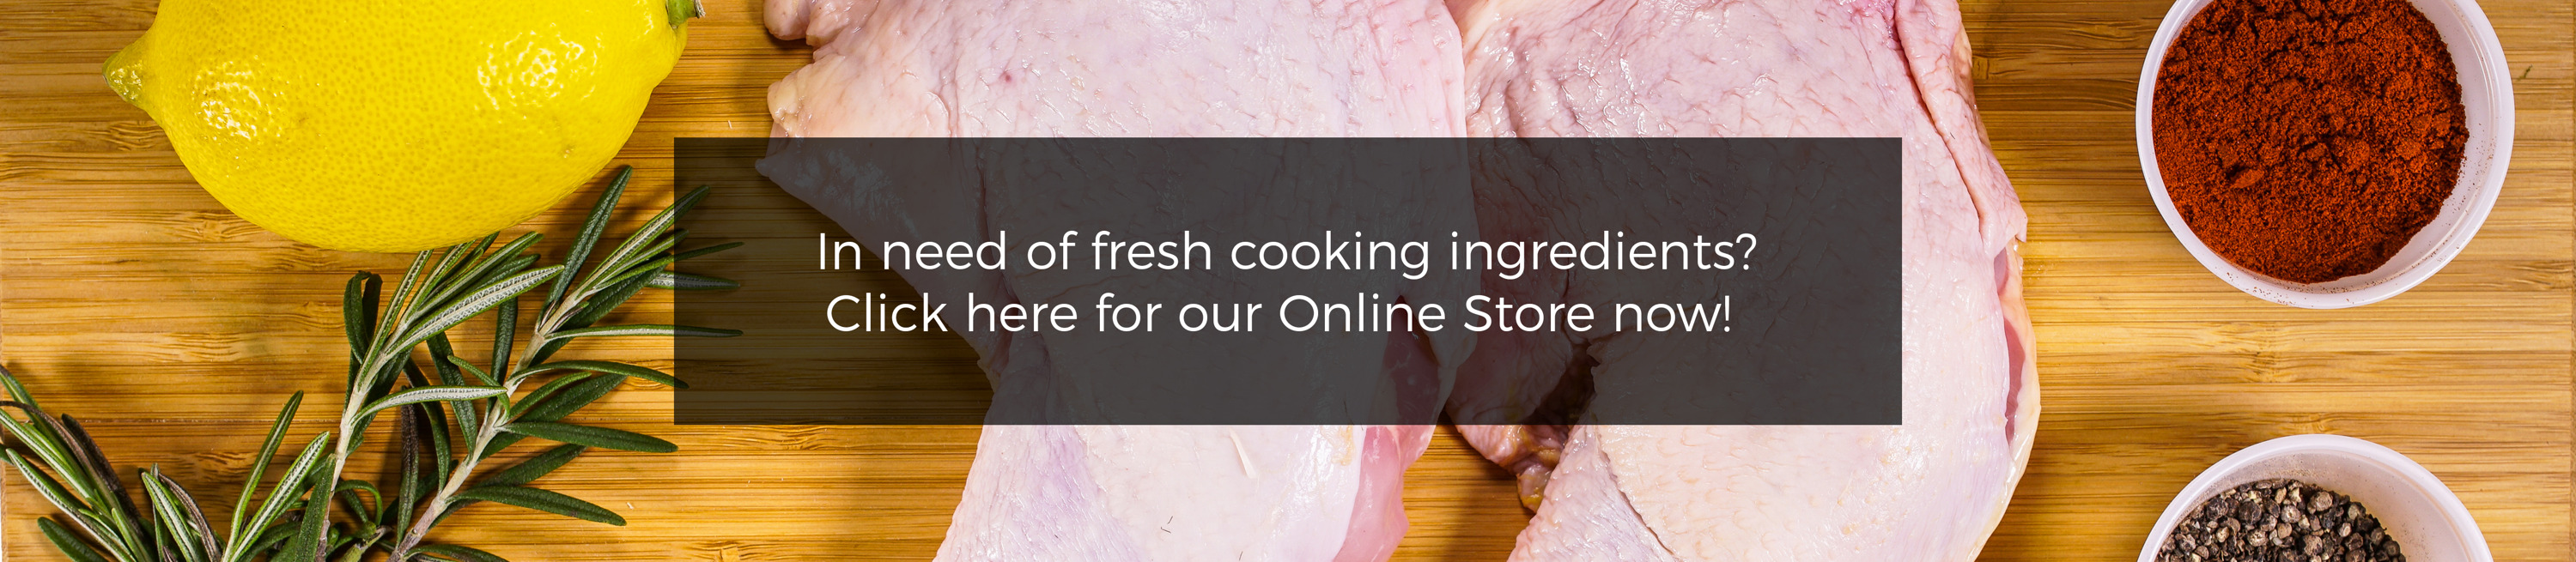 In need of fresh cooking ingredients? Click here for our online store now!